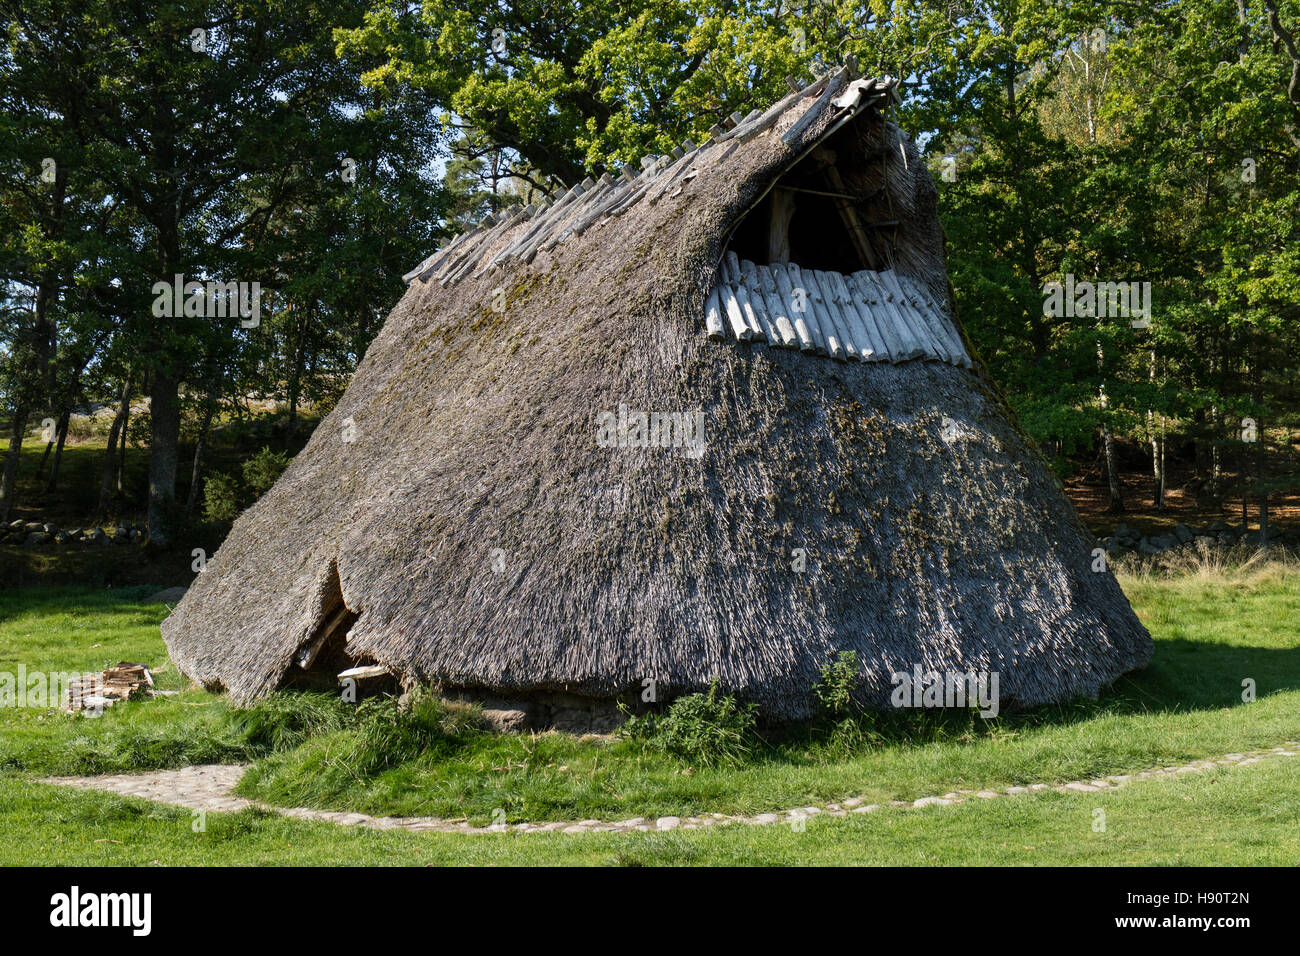 Replica of an old farmhouse from the bronze century in the Tanum world heritage center, Sweden - Stock Image